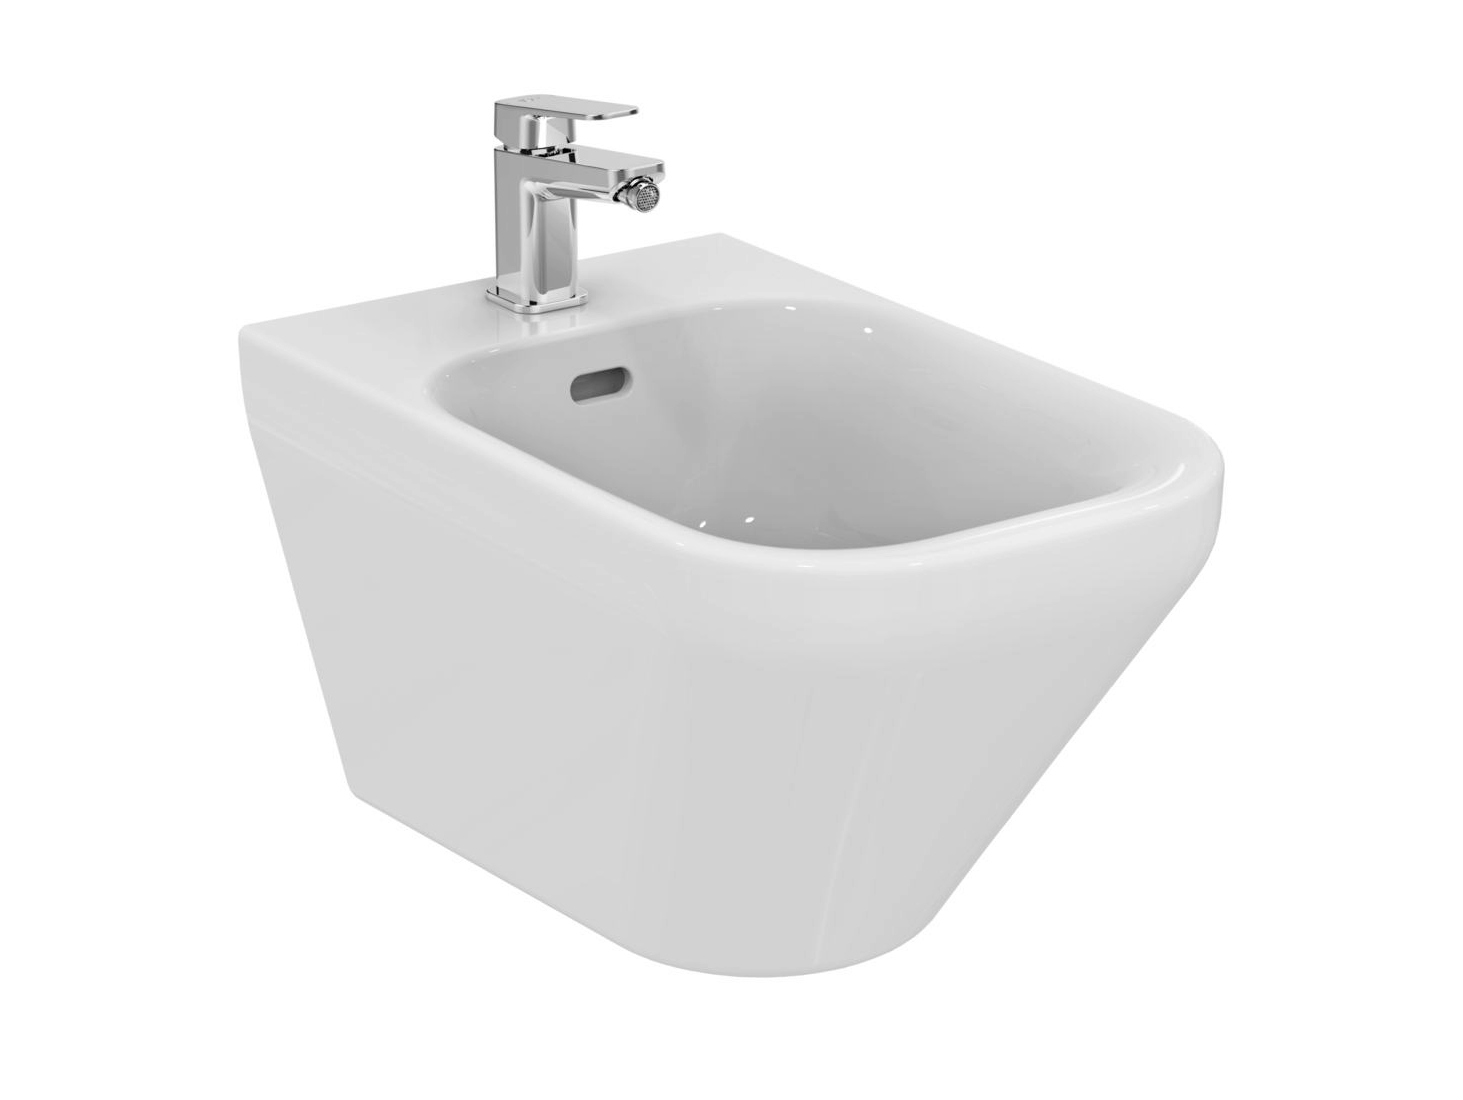 Bidet sospeso in ceramica tonic ii k5236 by ideal for Architec bidet sospeso